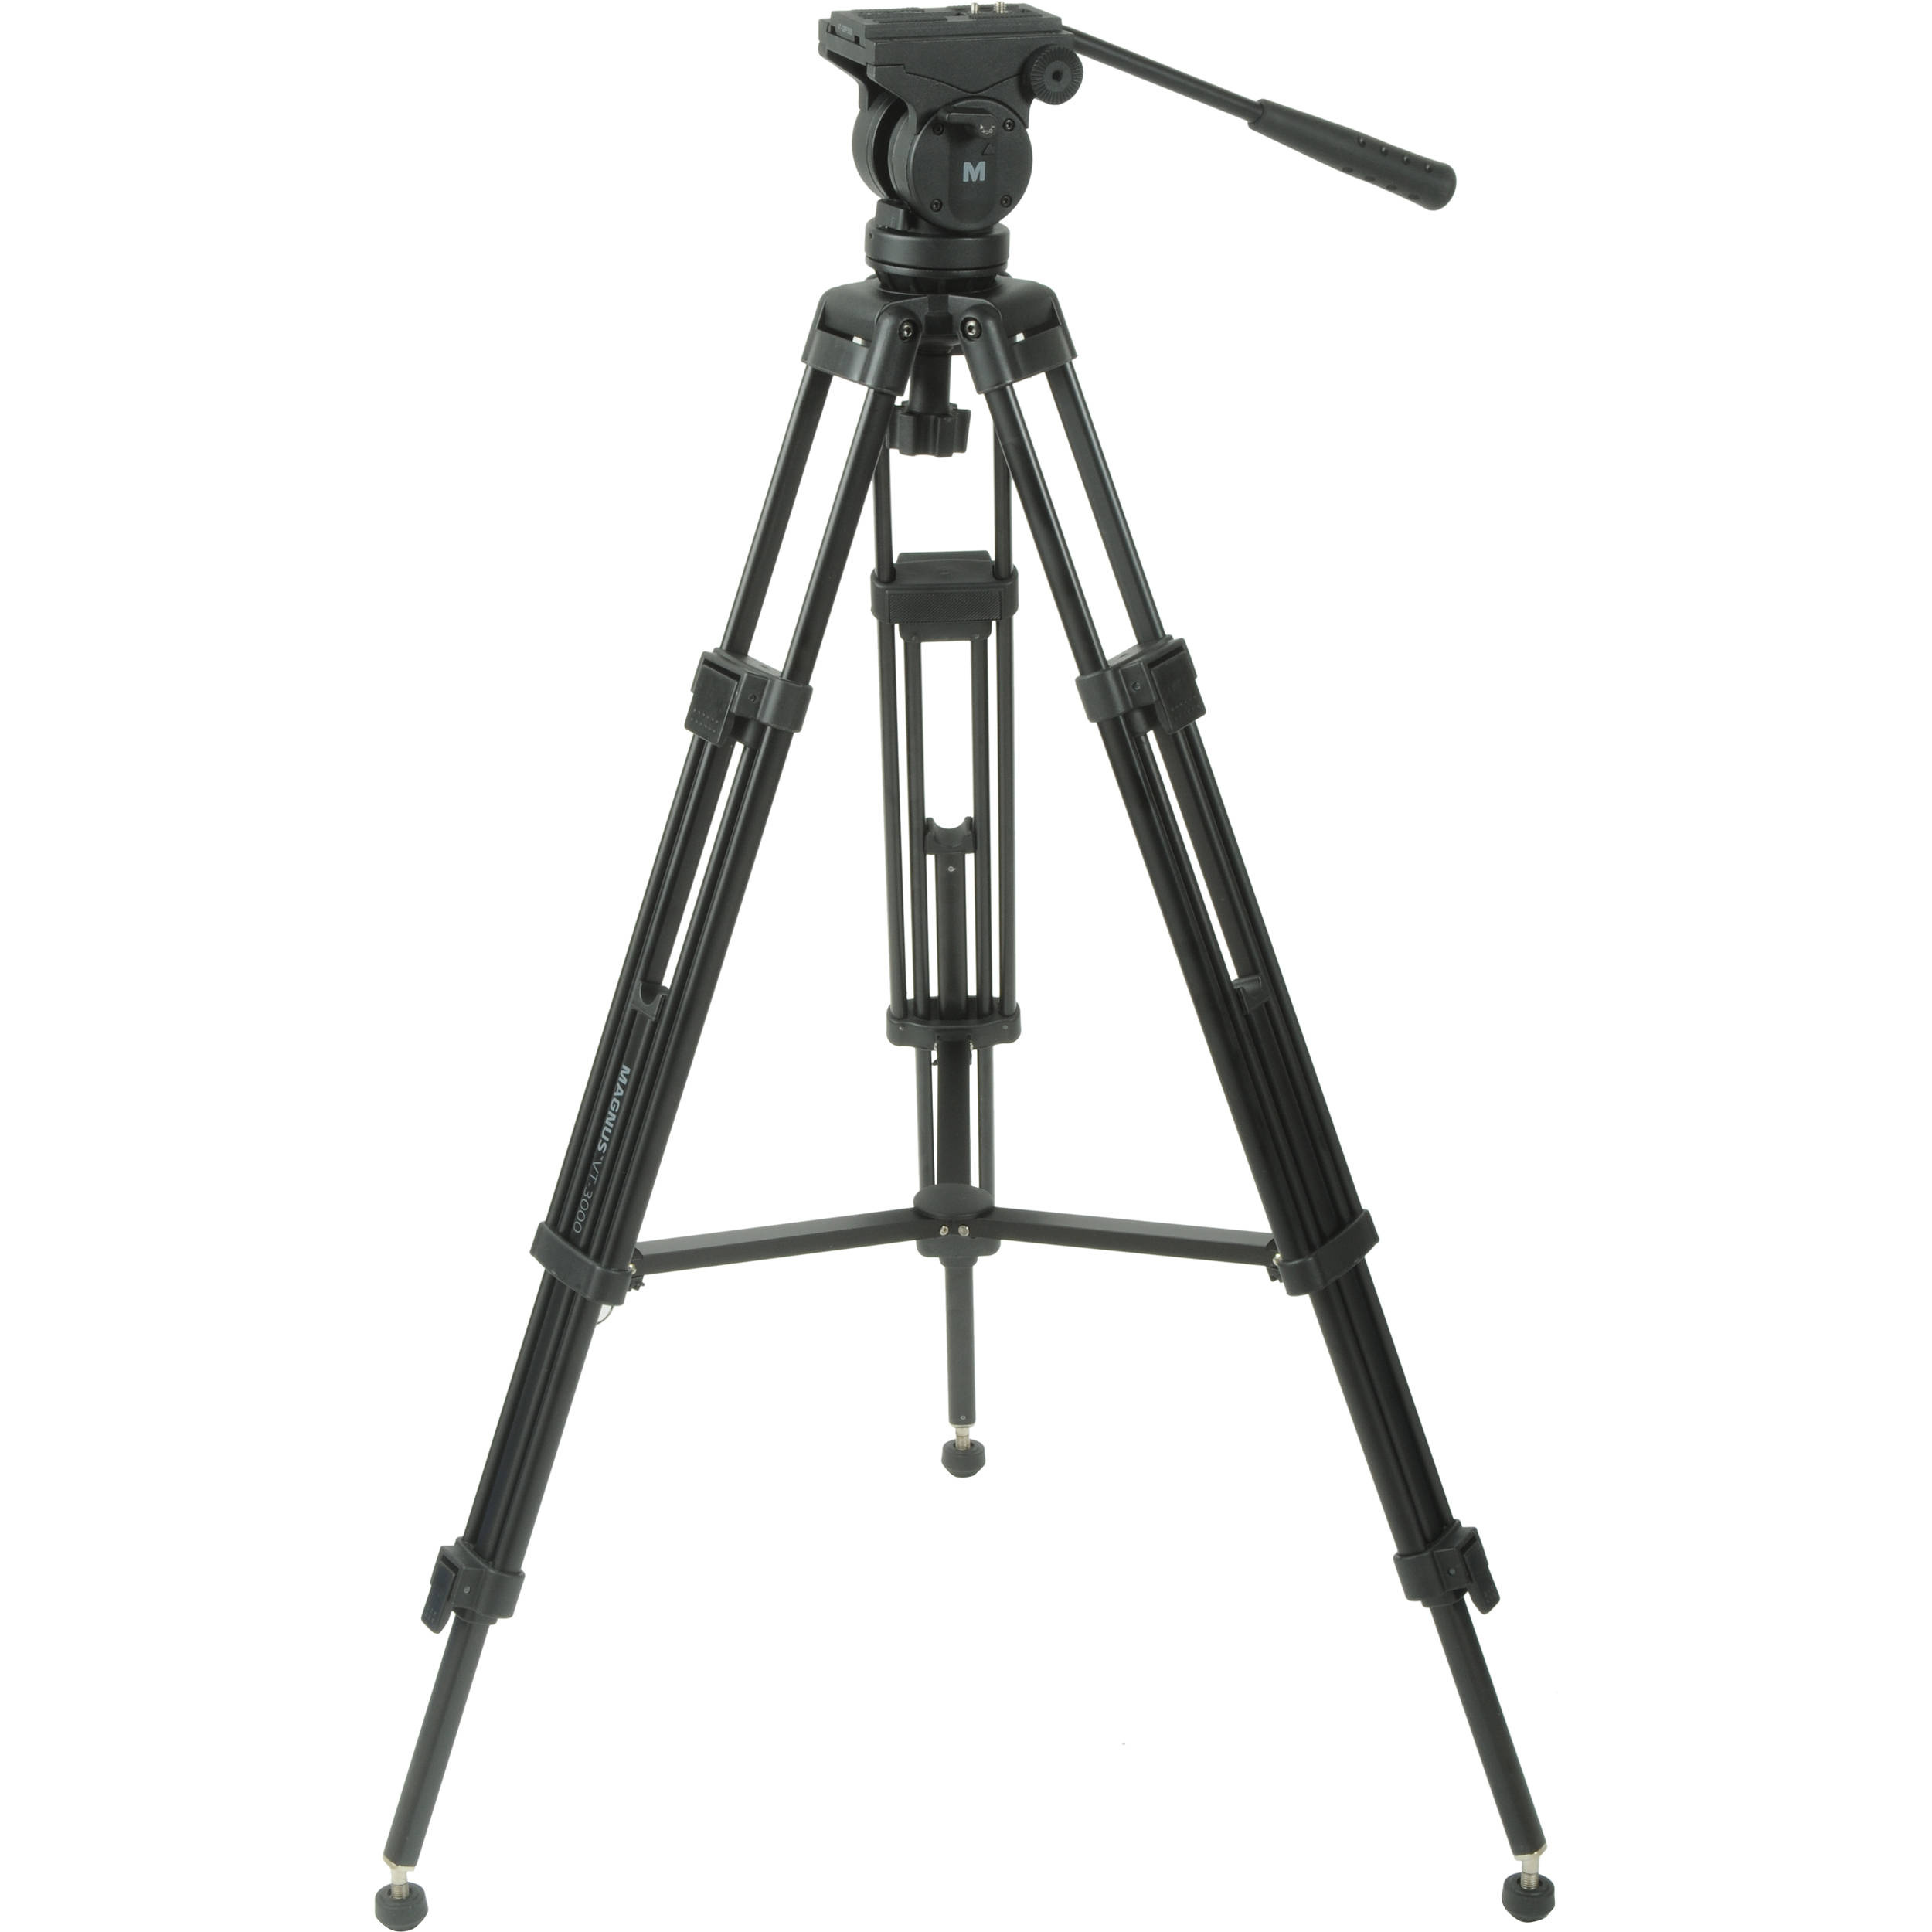 Magnus VT-3000 Tripod System with Fluid Head